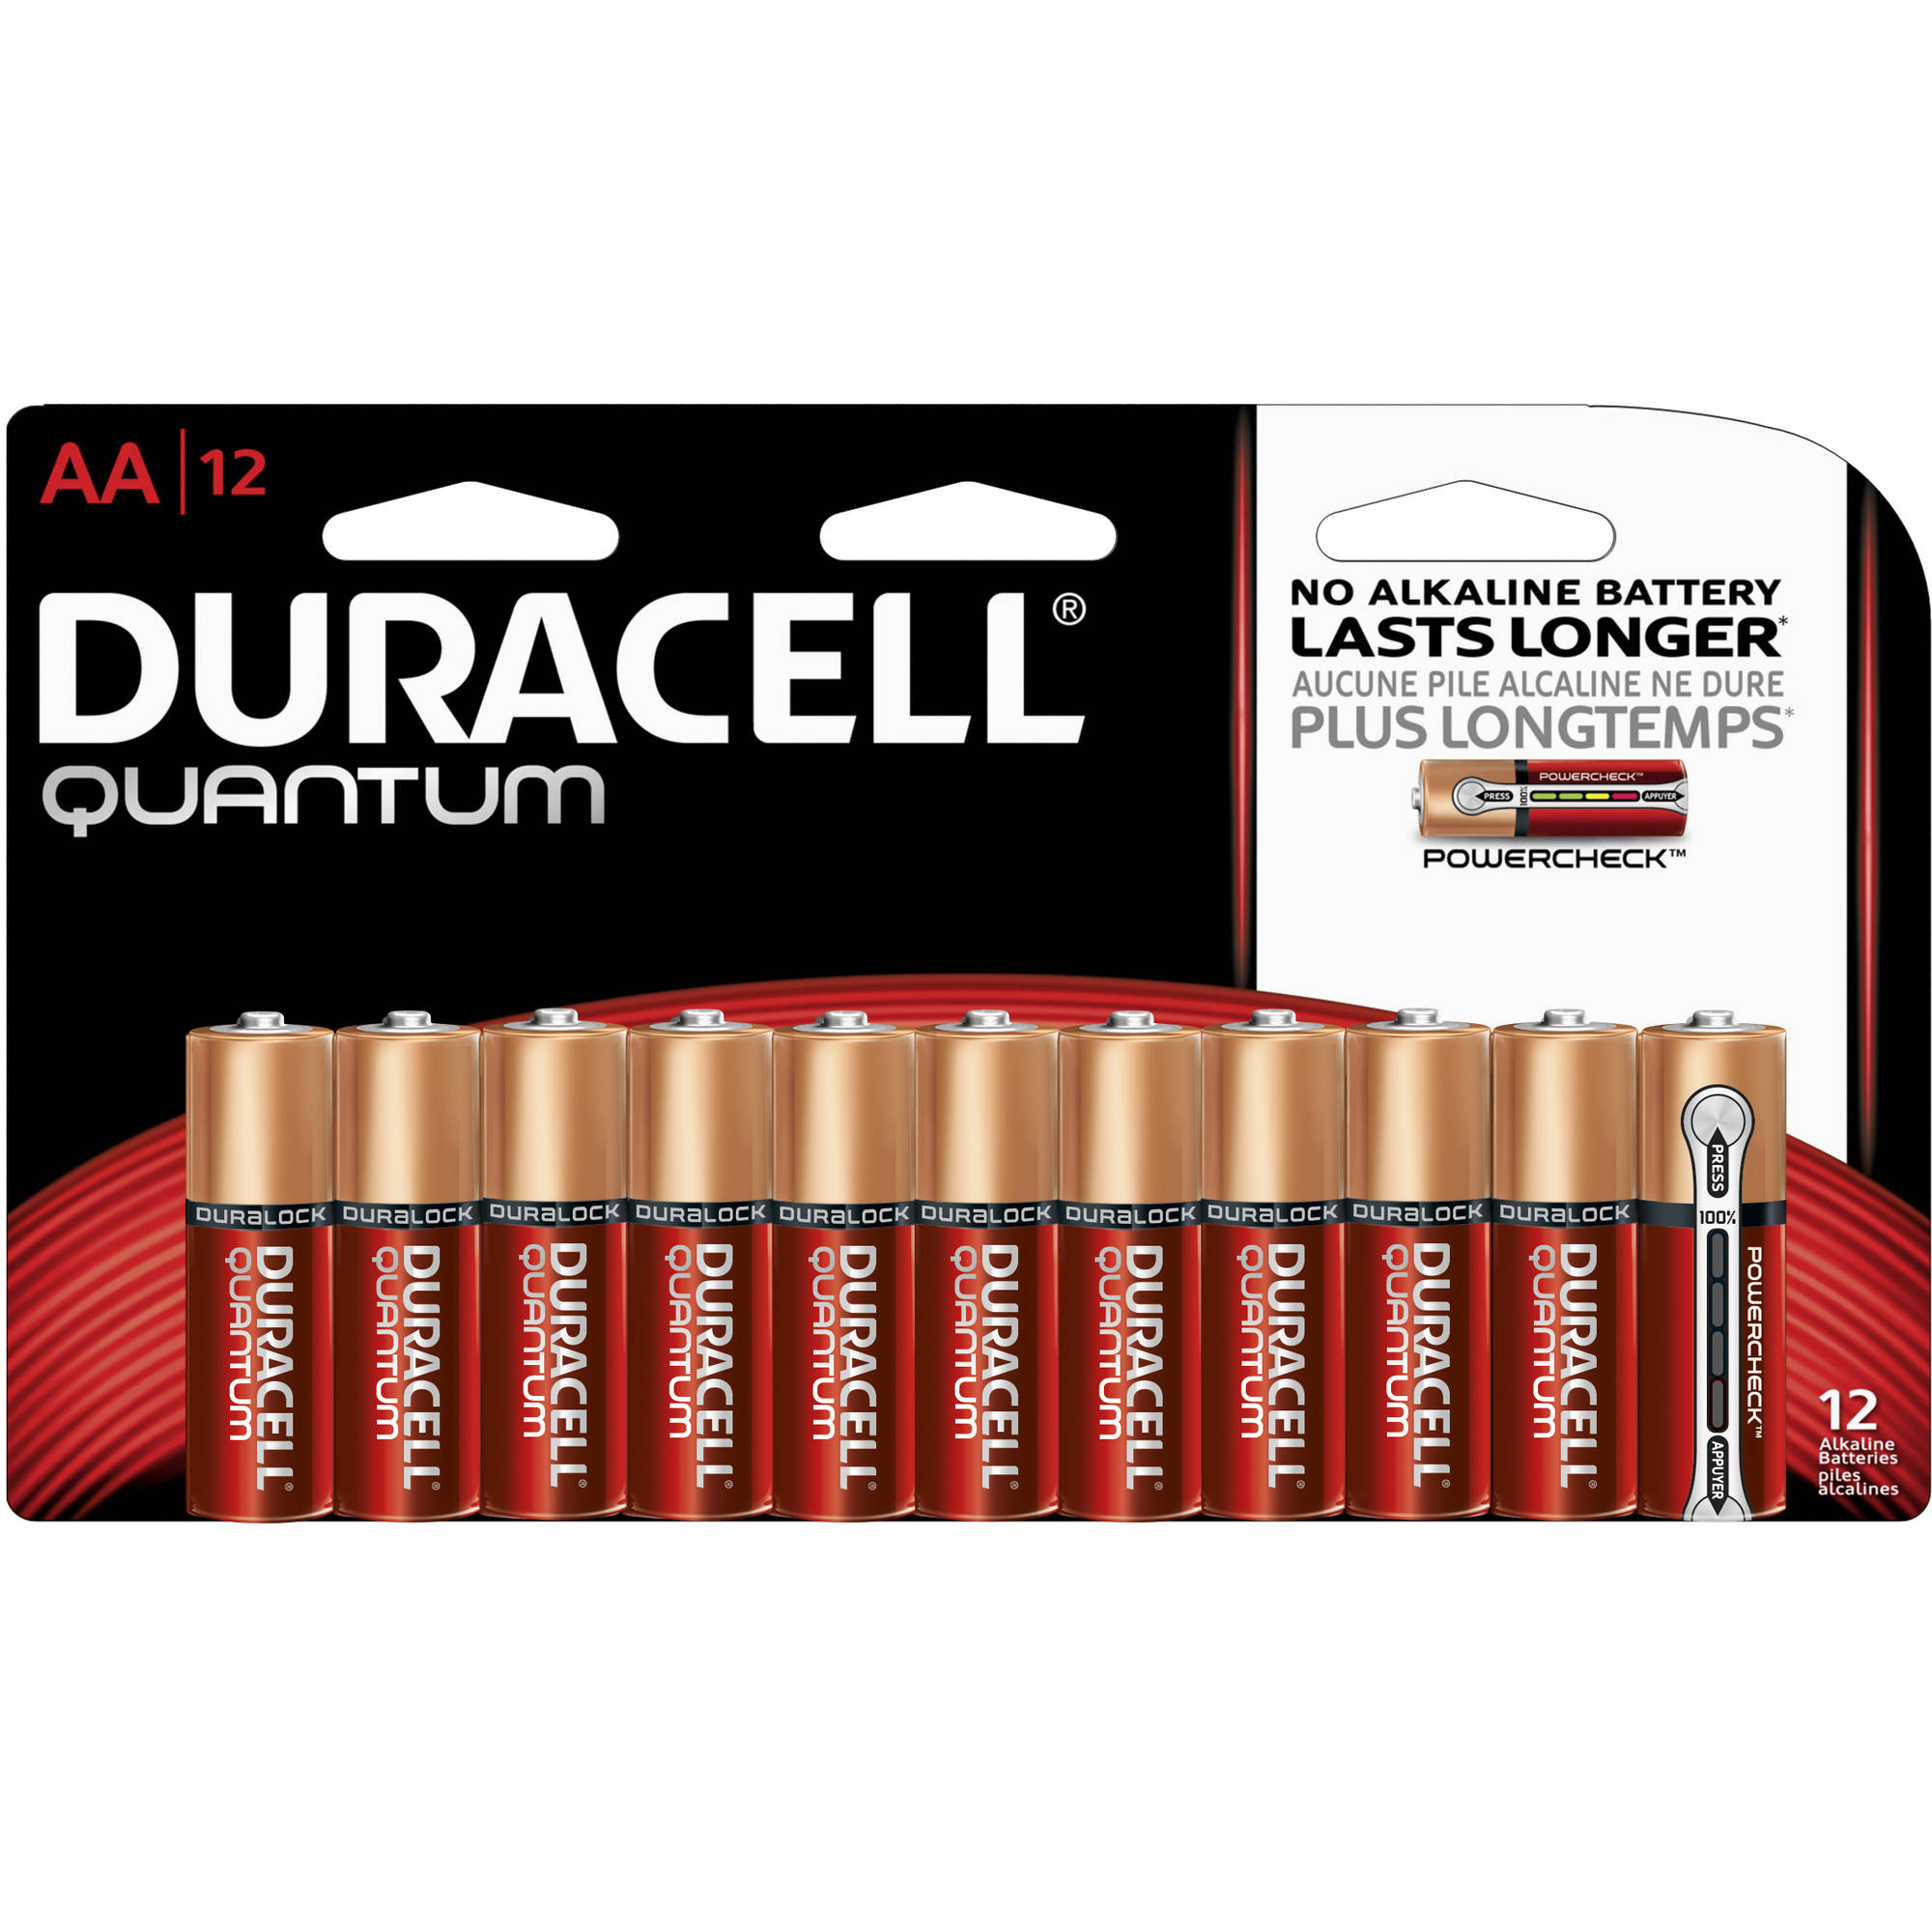 Duracell Quantum AA Alkaline Household Batteries 12ct Pack